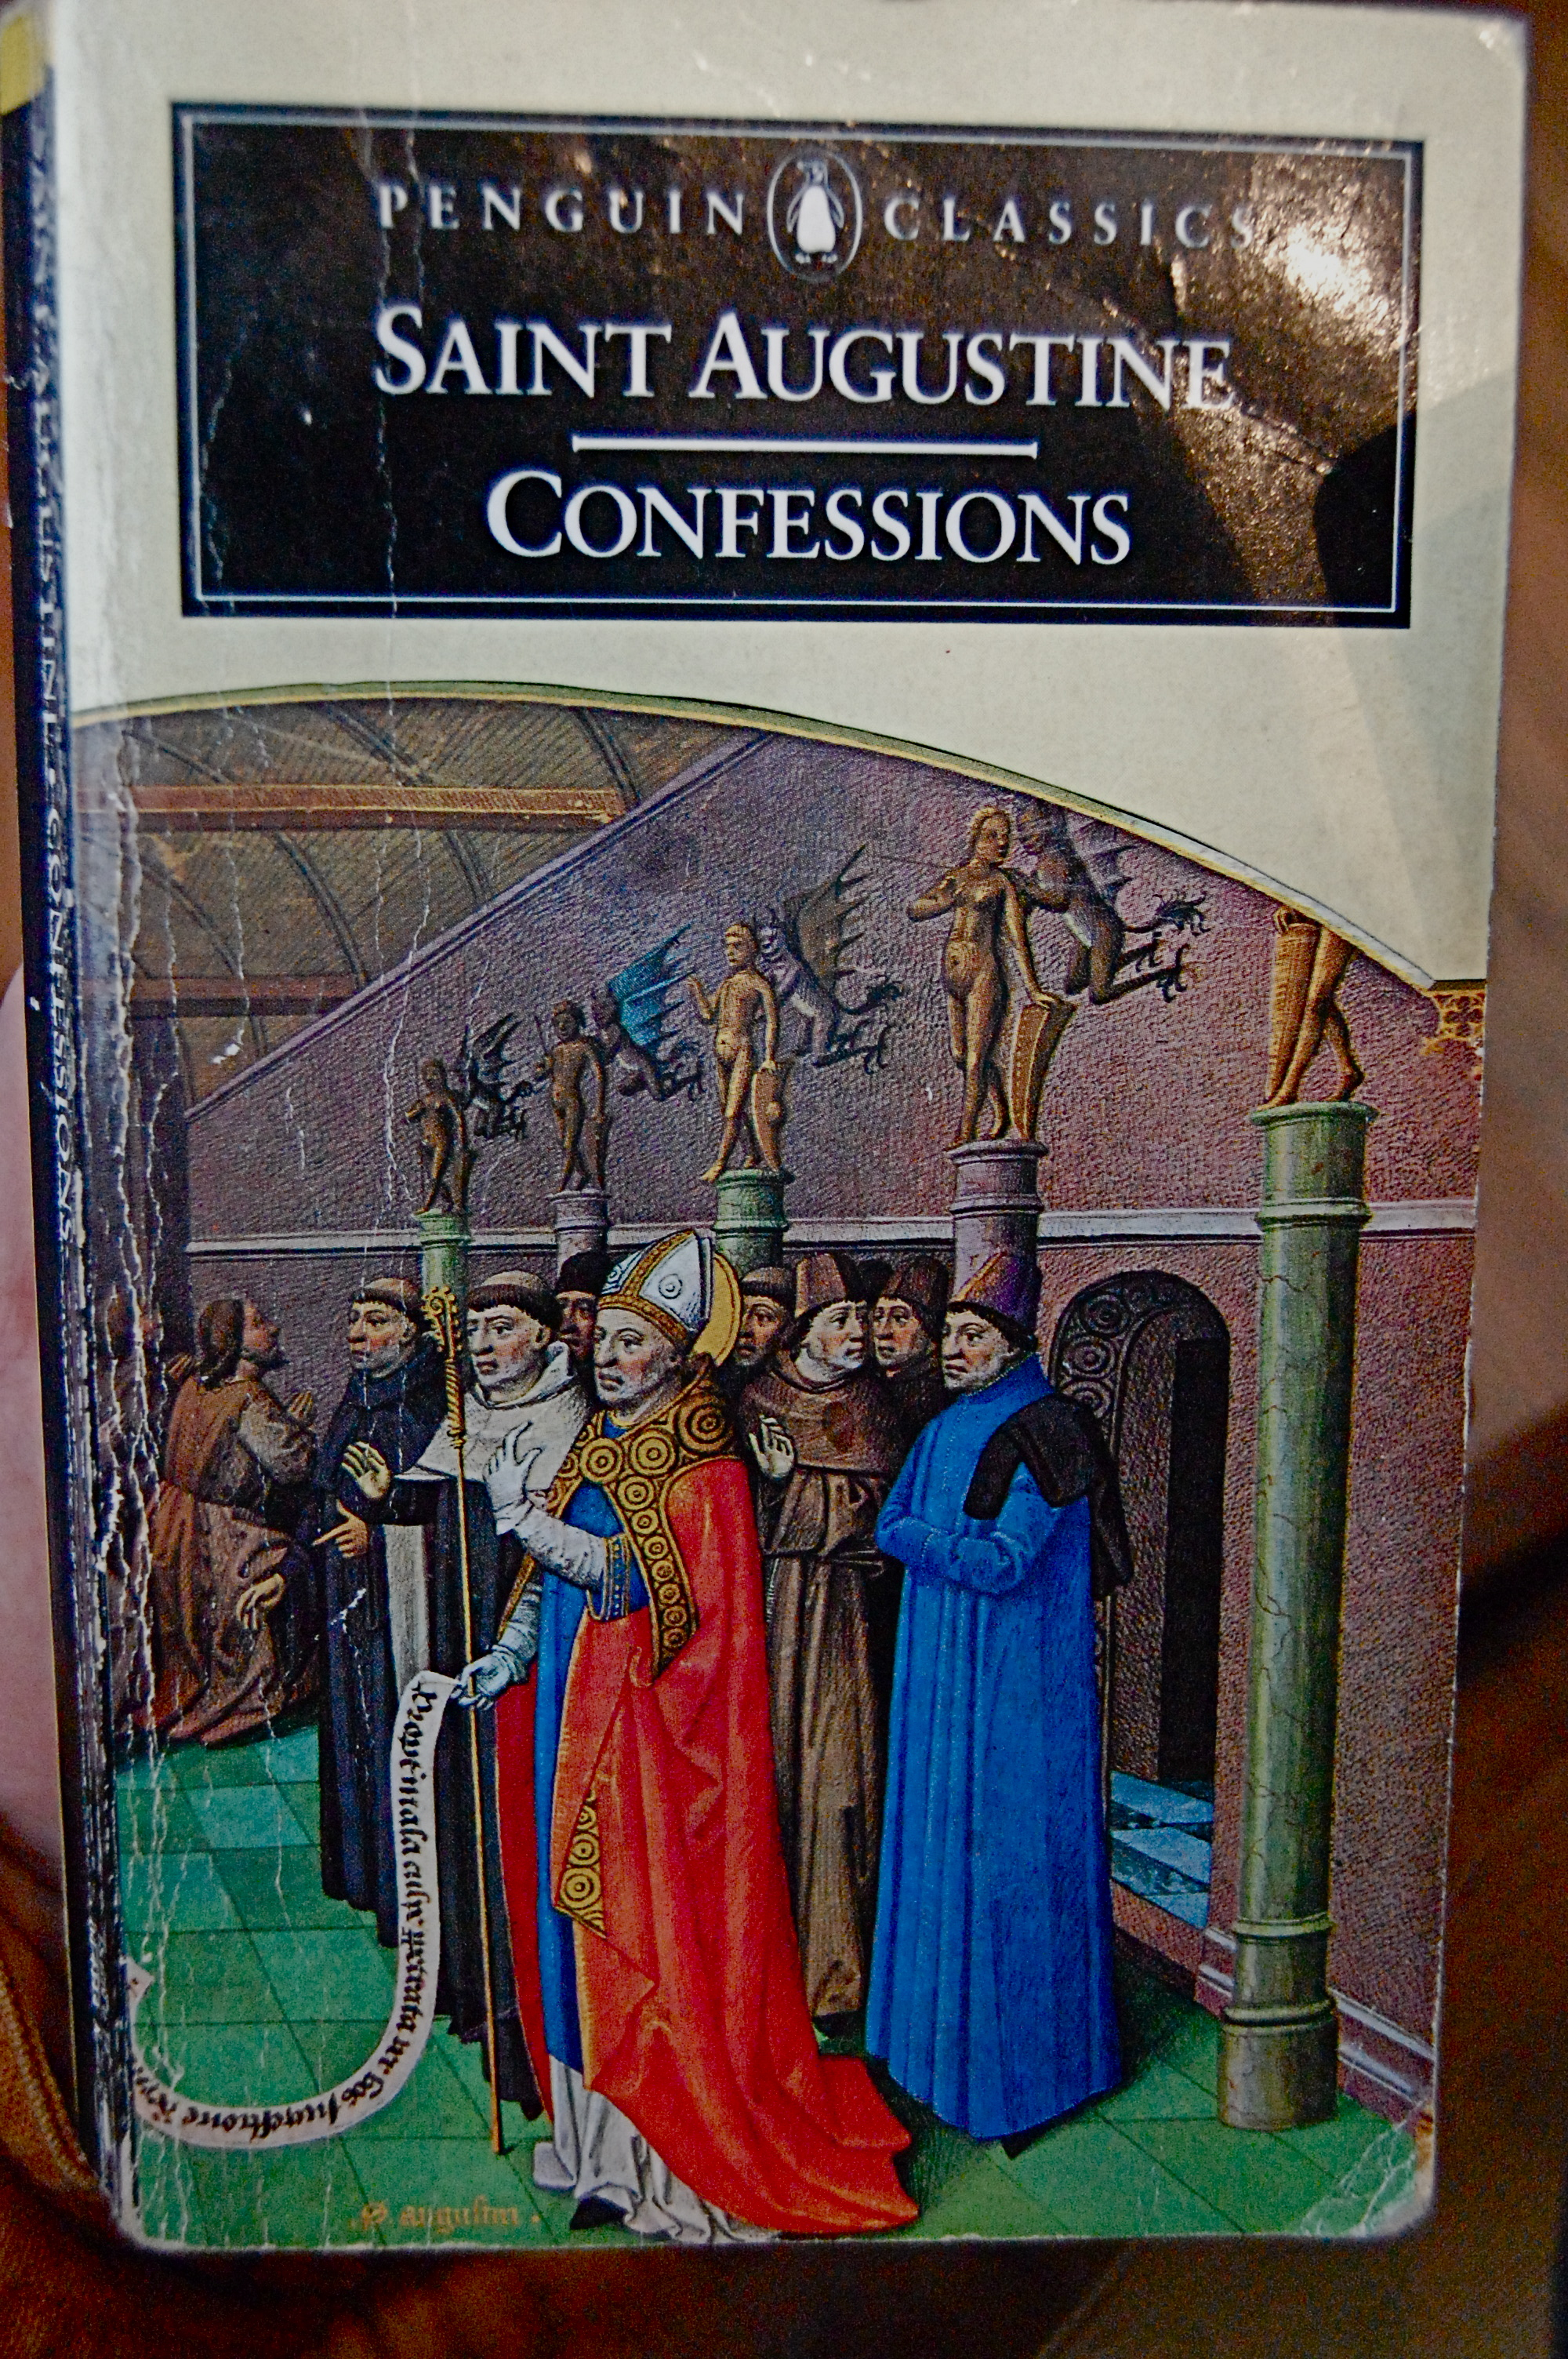 an analysis of st augustines confessions Find all available study guides and summaries for st augustine's confessions by saint augustine if there is a sparknotes, shmoop, or cliff notes guide, we will have it listed here.